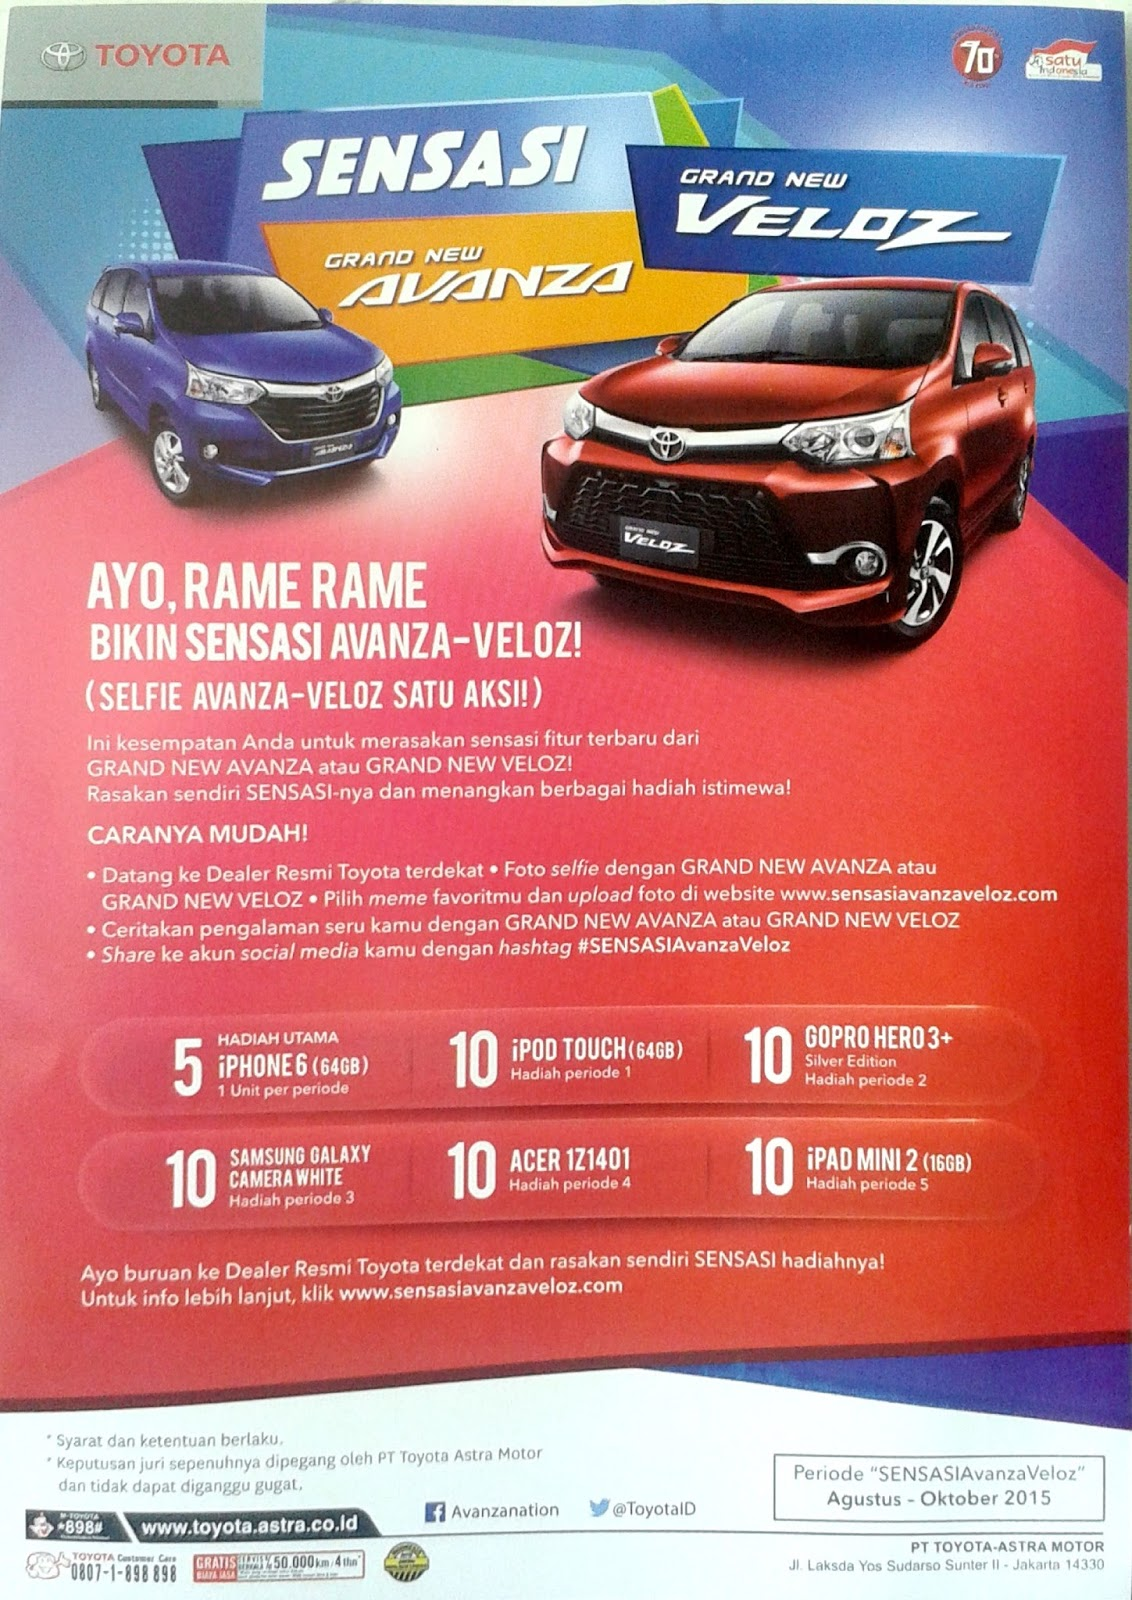 harga grand new avanza veloz 2015 type g 1.3 sensasi and toyota auto 2000